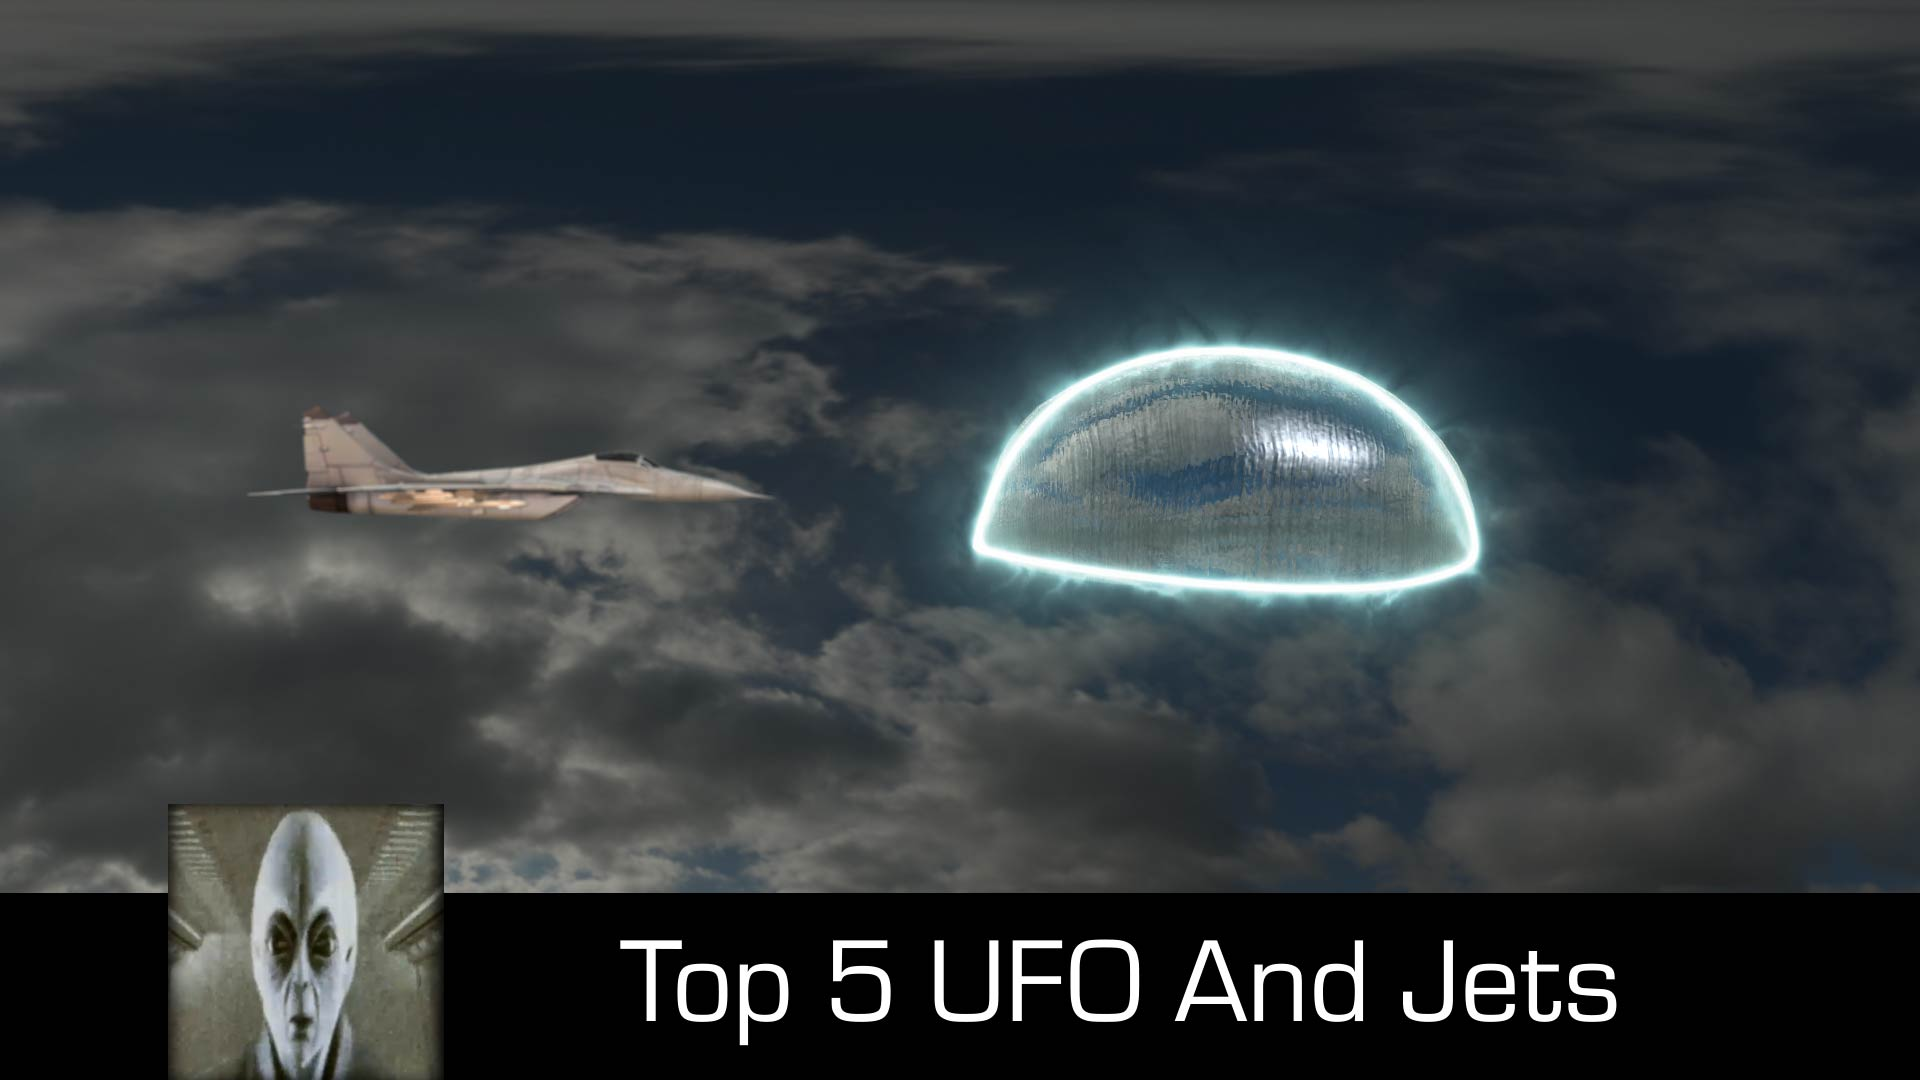 Top 5 UFOs And Jets